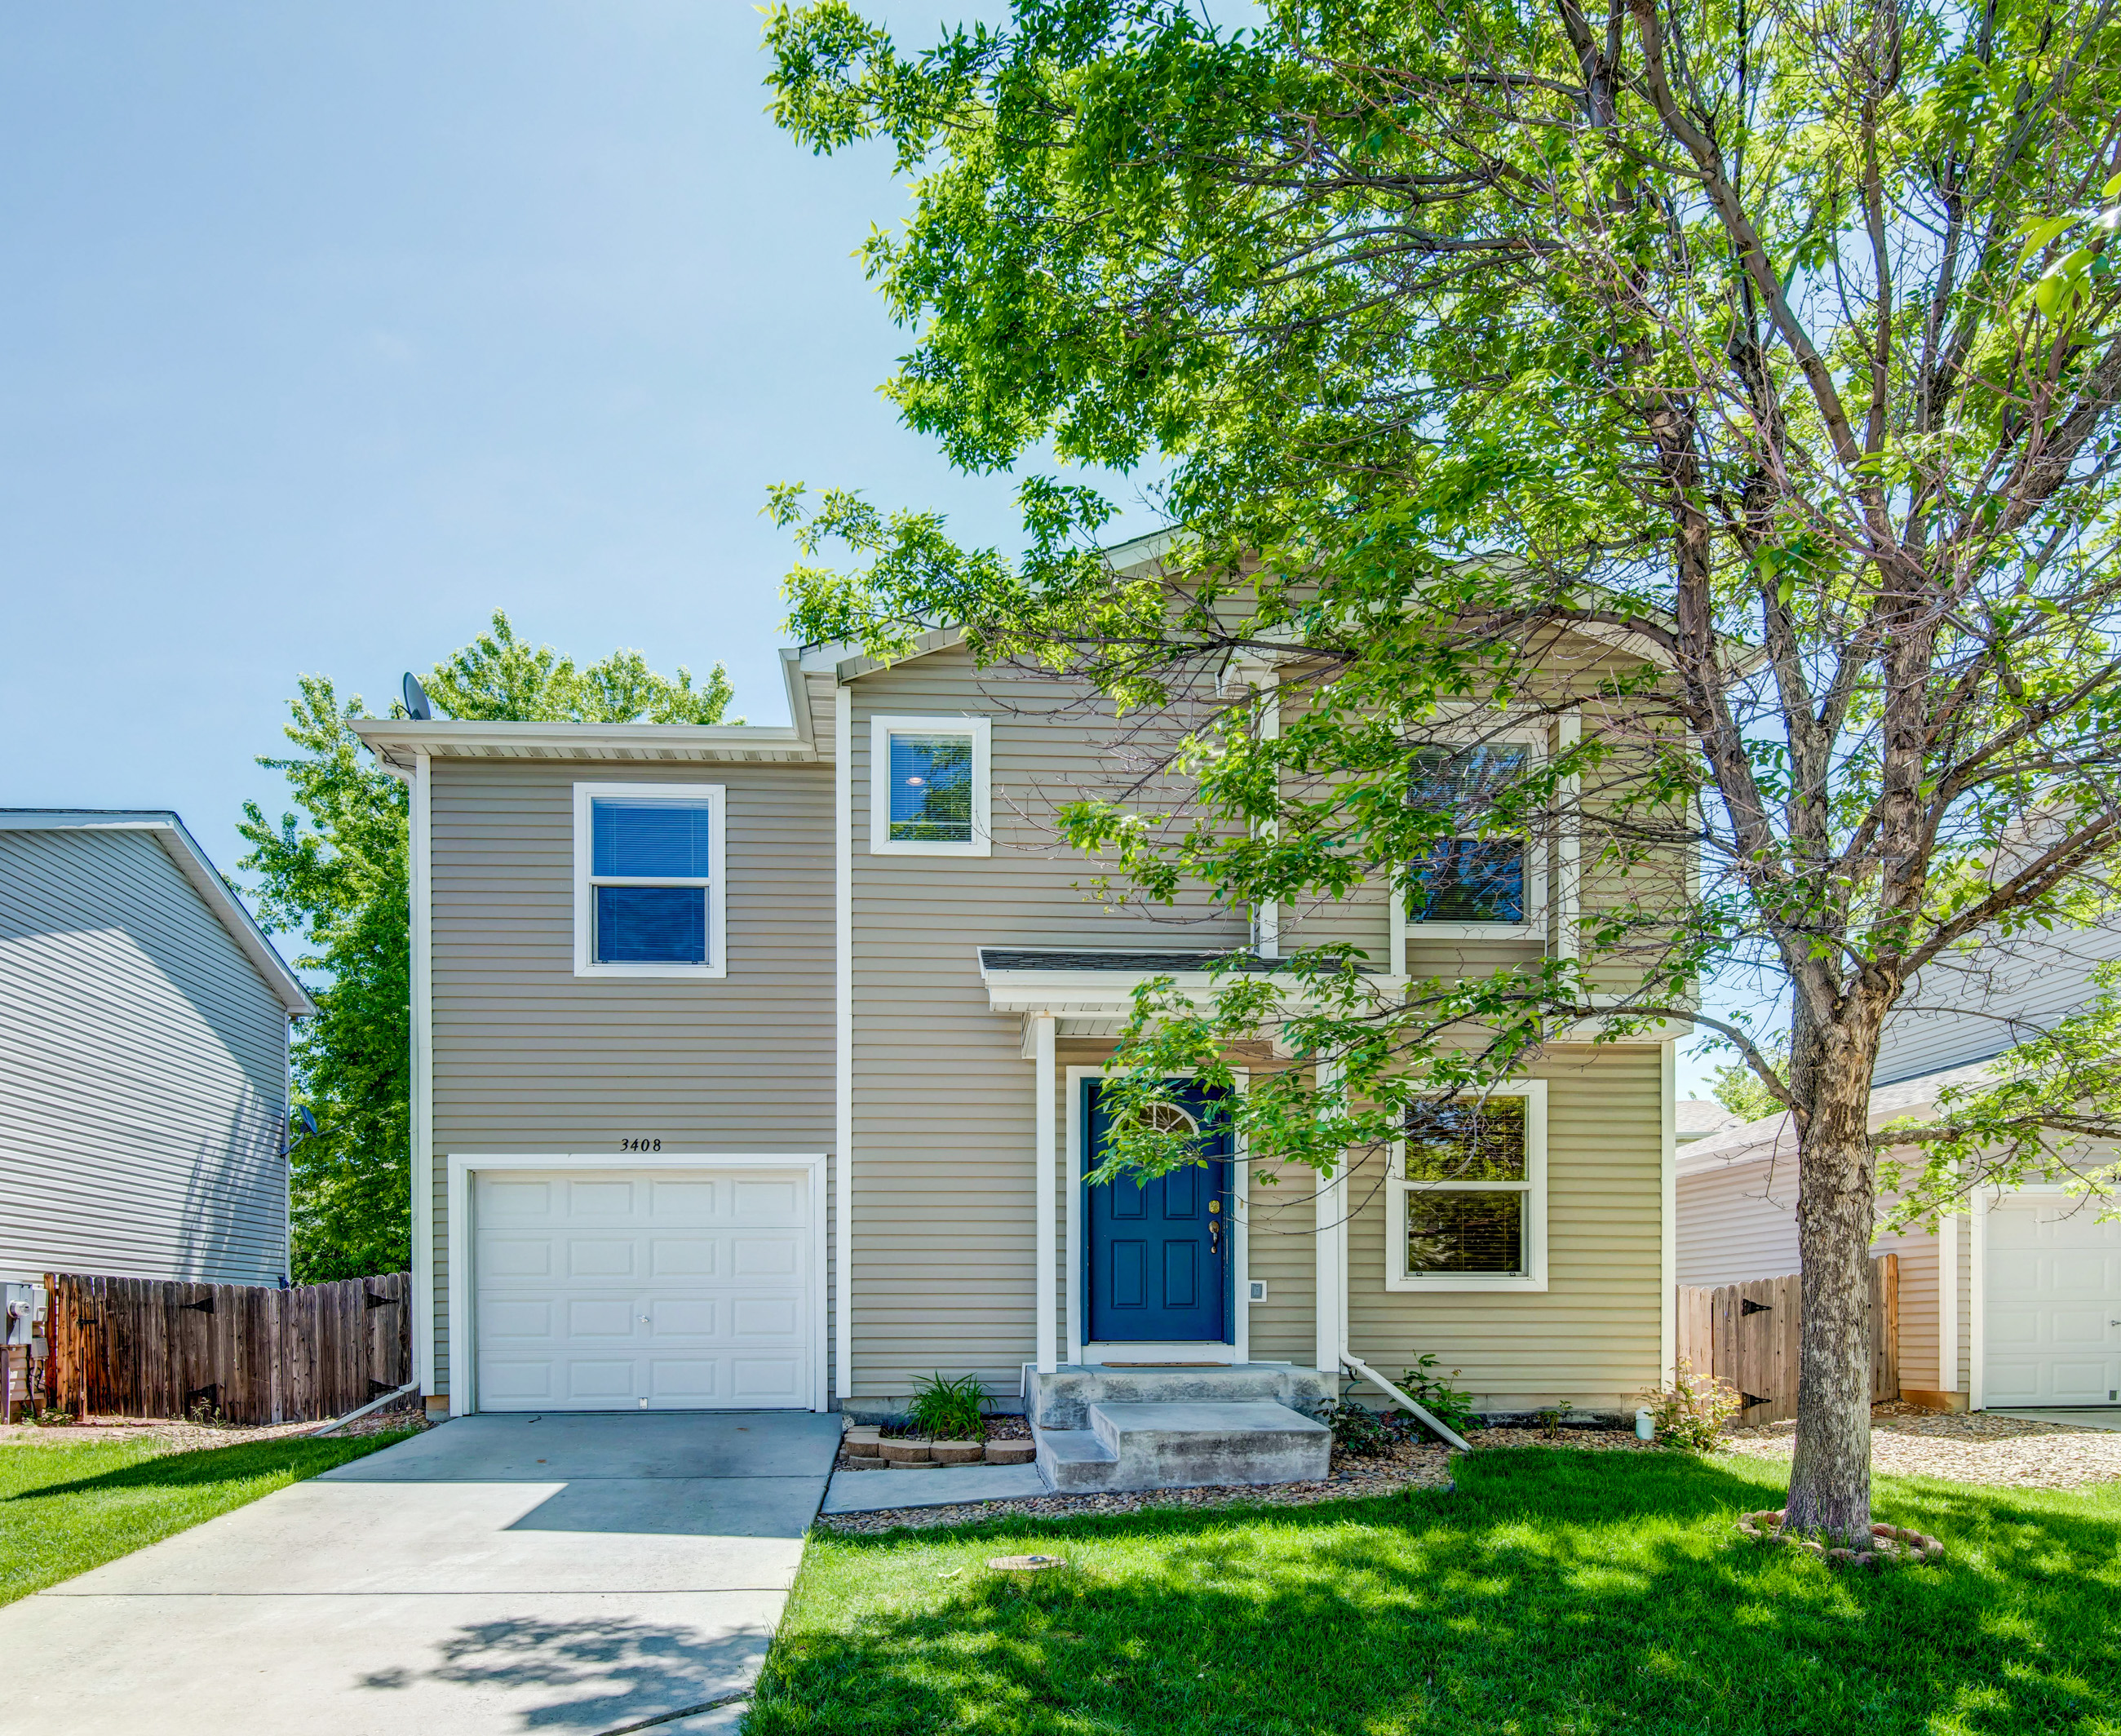 northern colorado home for sale sold fort collins real estate by angie spangler